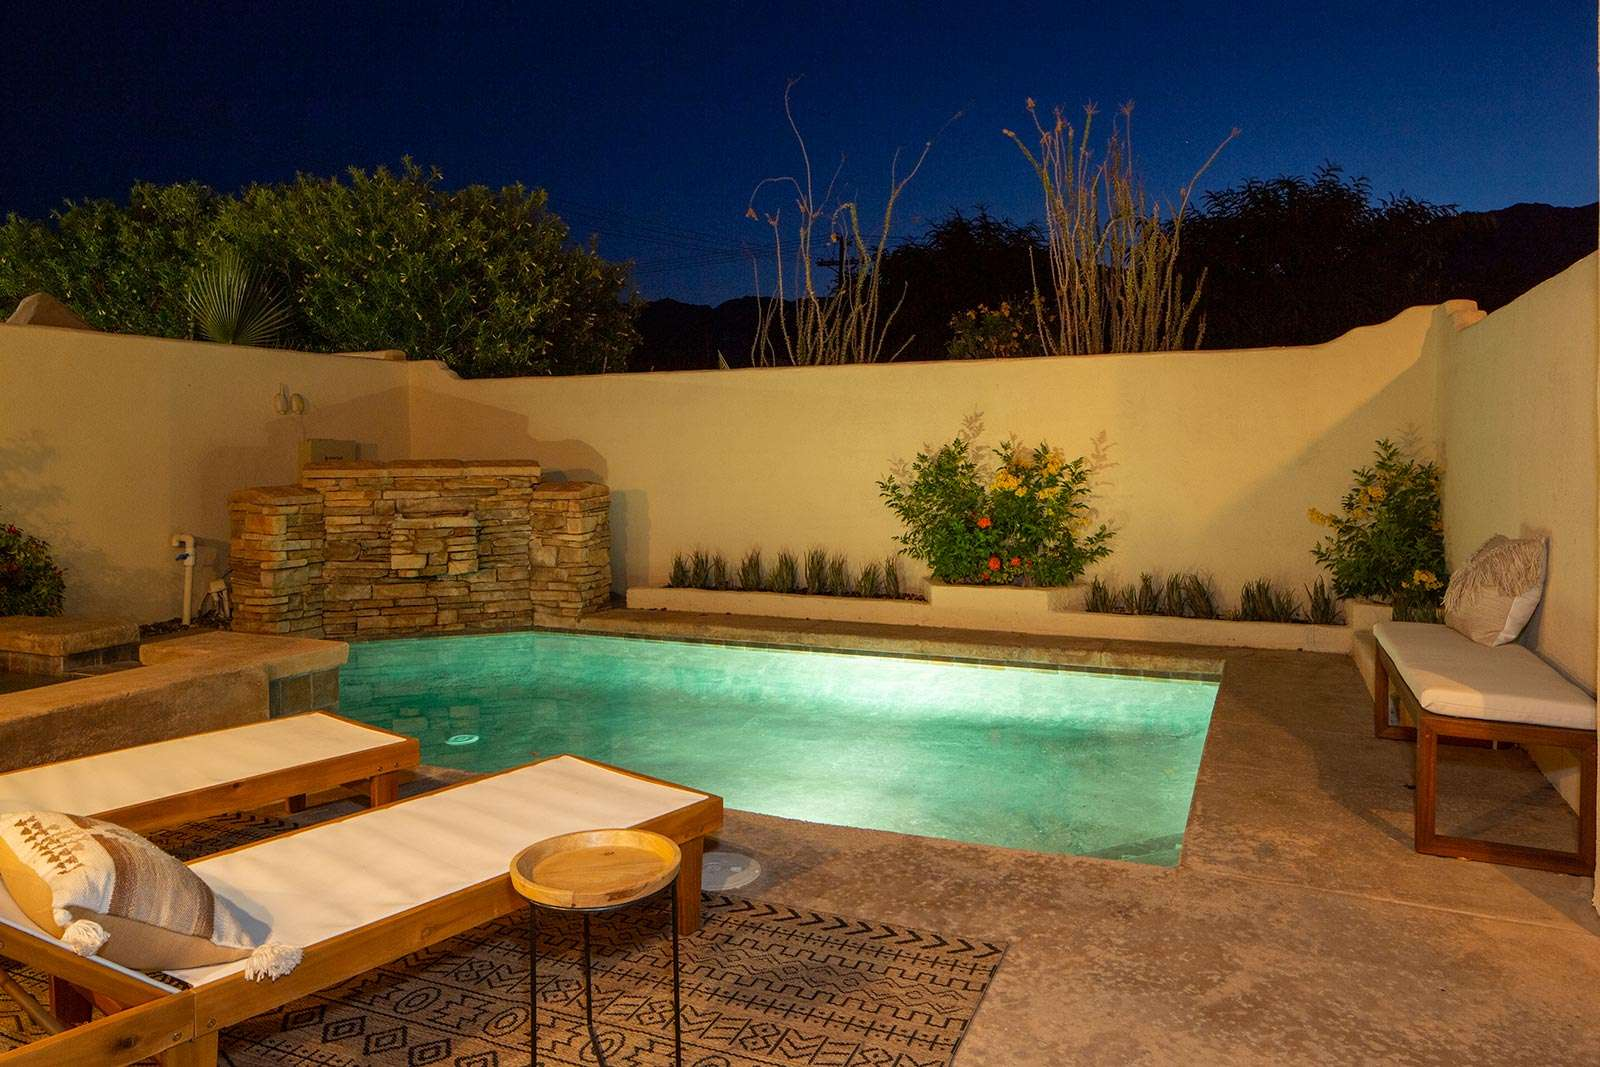 pool-with-mountain-views-night